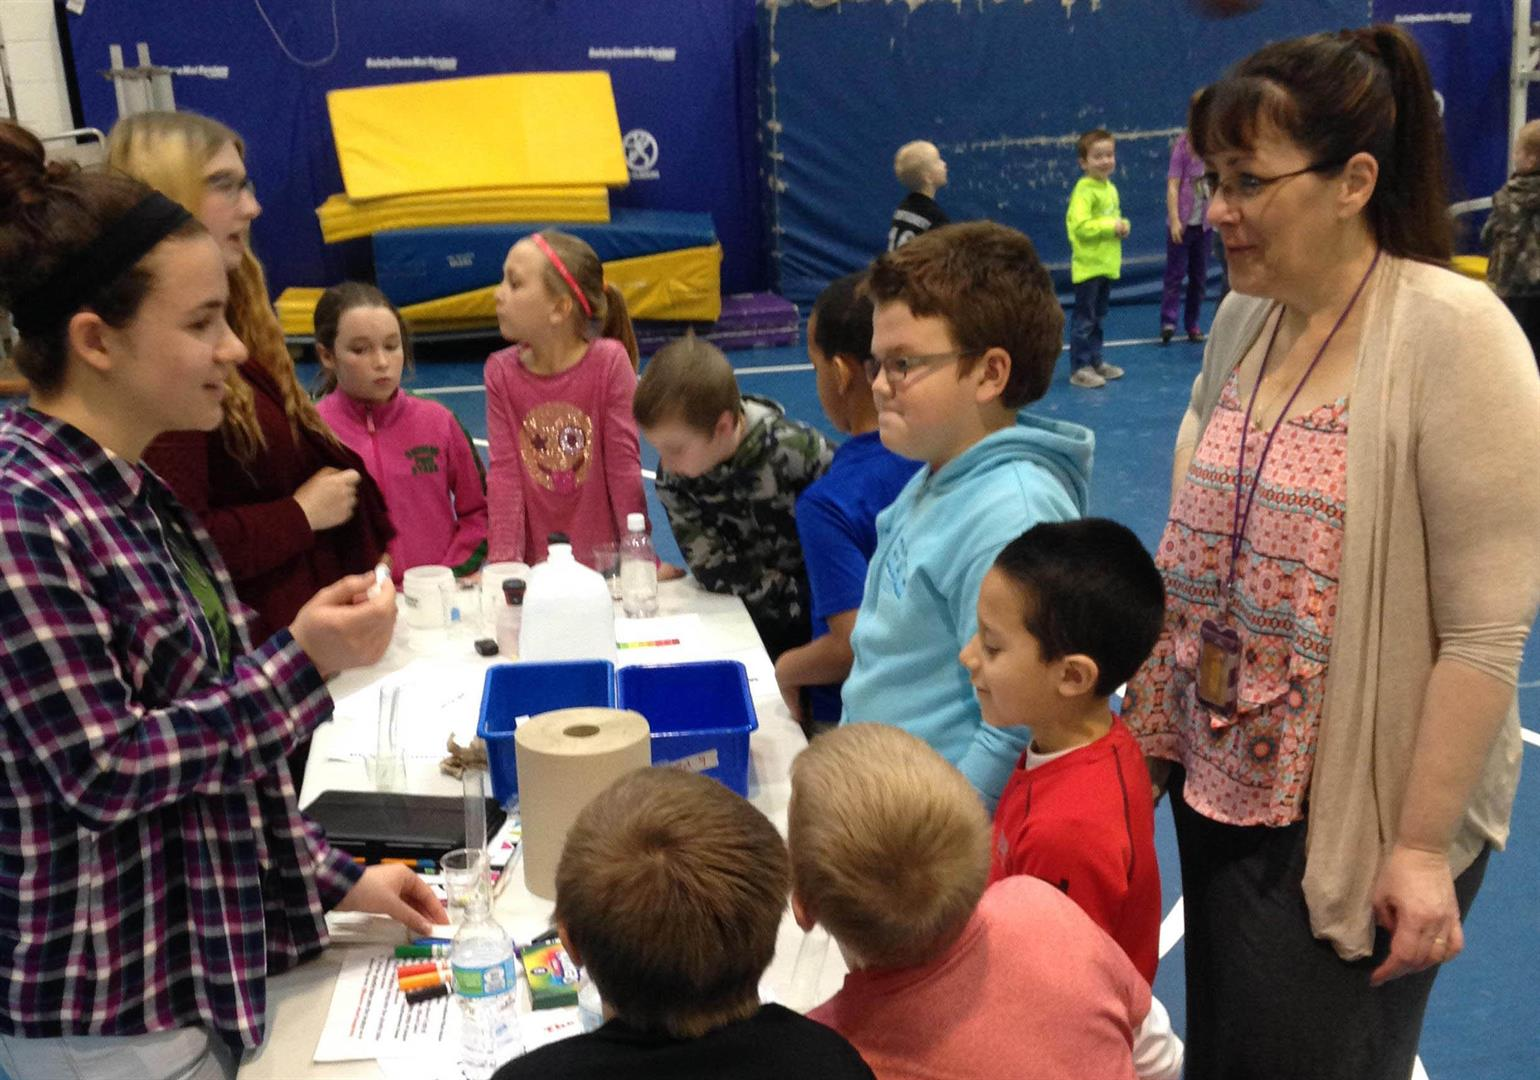 several students view a science fair